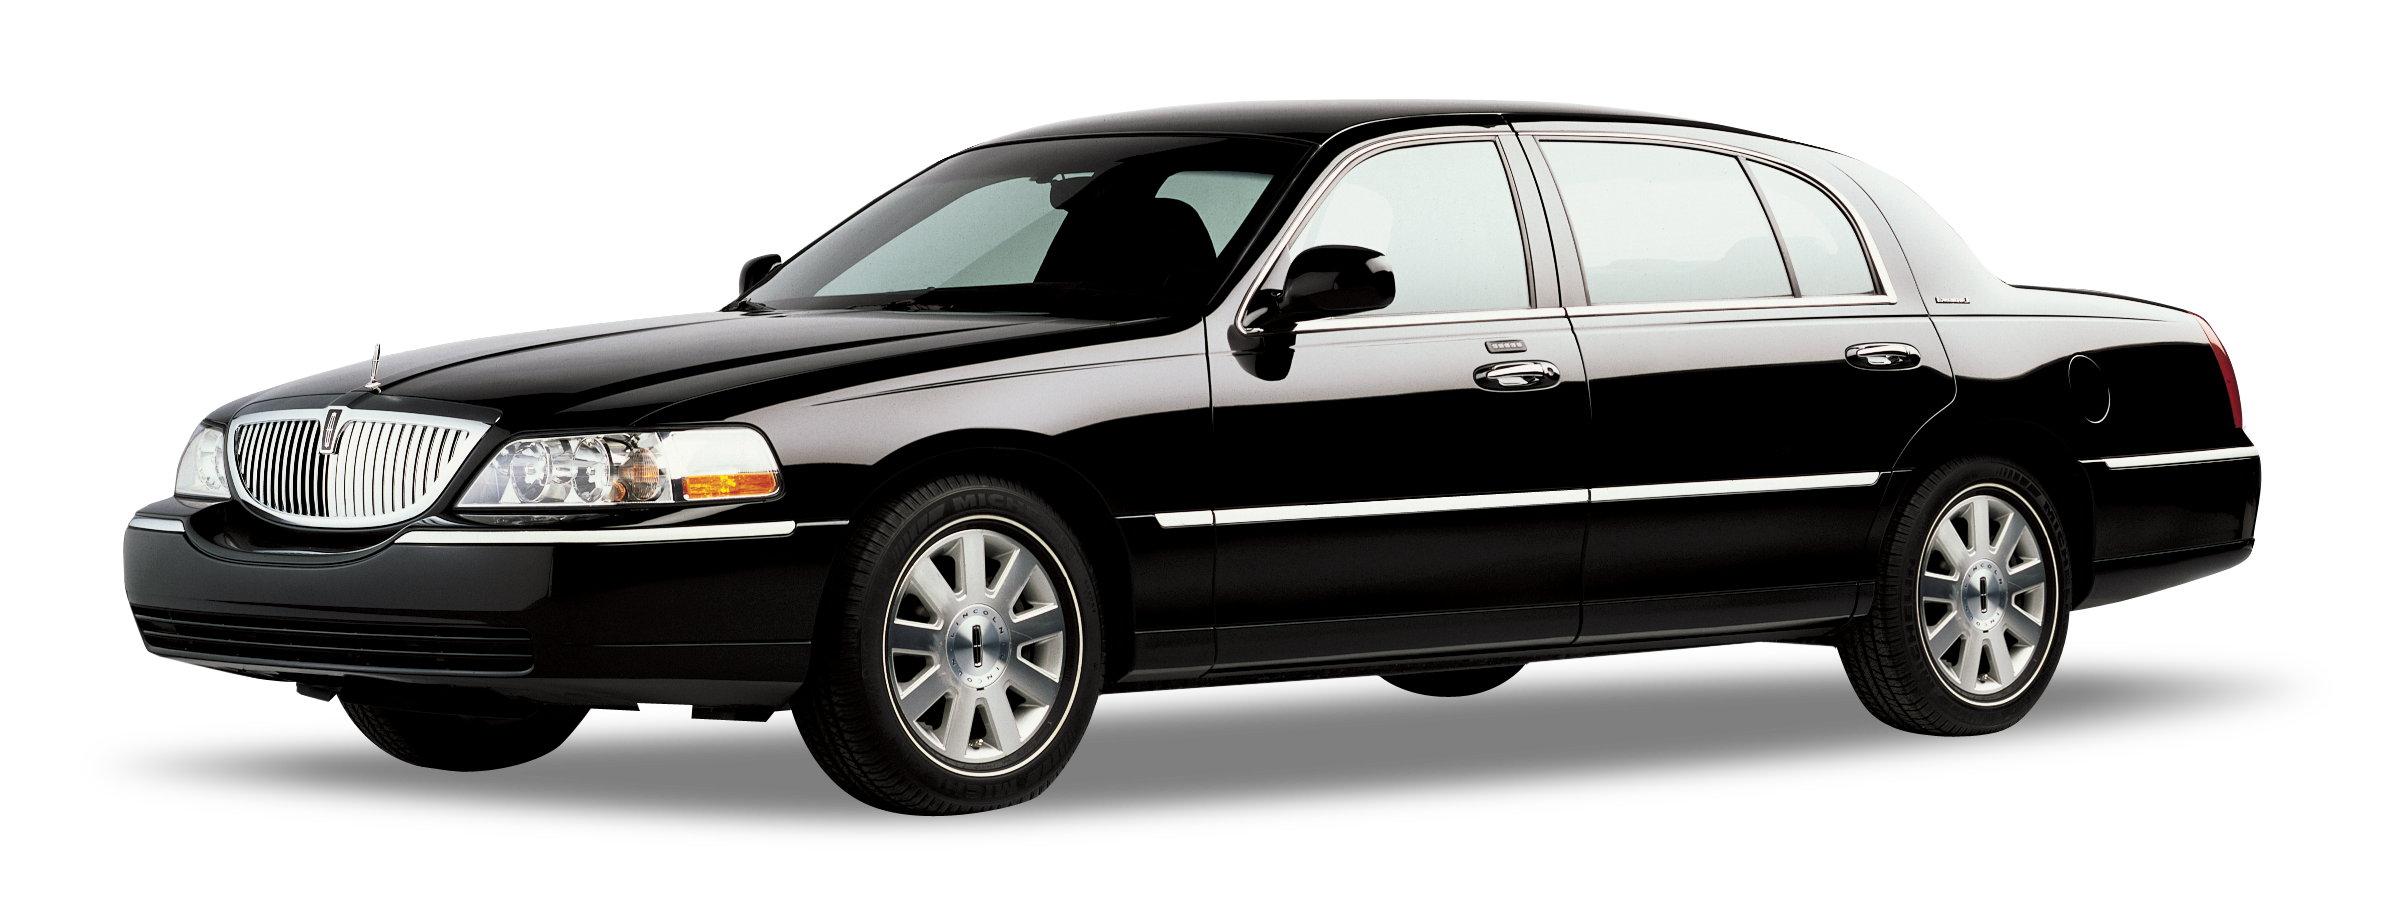 4 Passenger Black Lincoln Towncar Charlotte Limousine Transportation